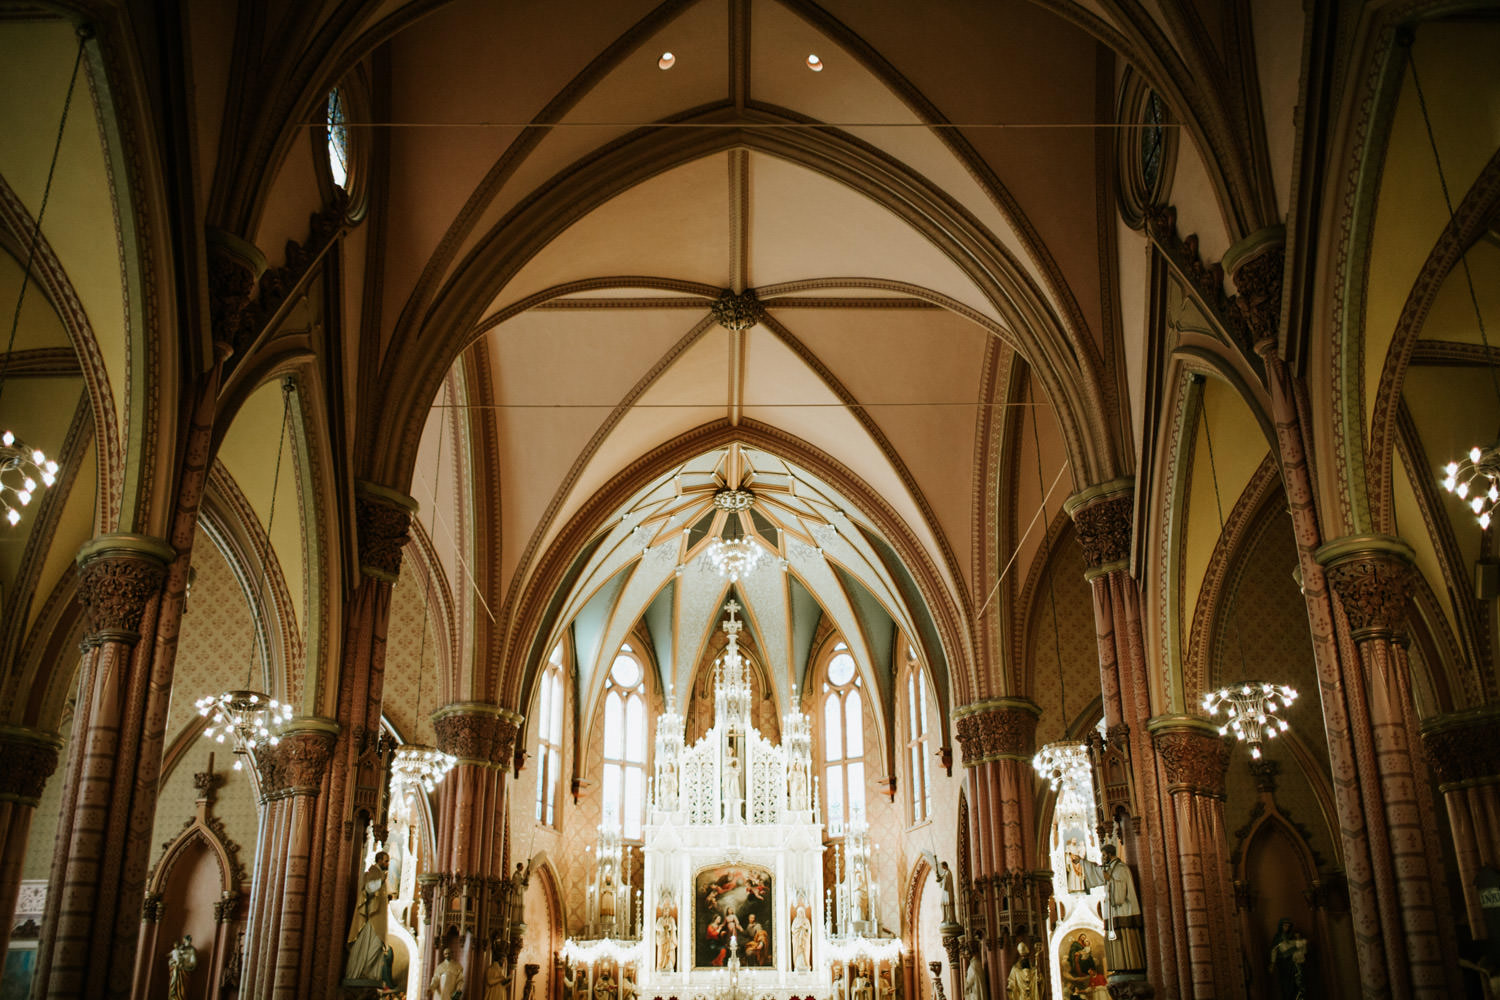 Saint Ignatius Church in Chicago during the wedding day